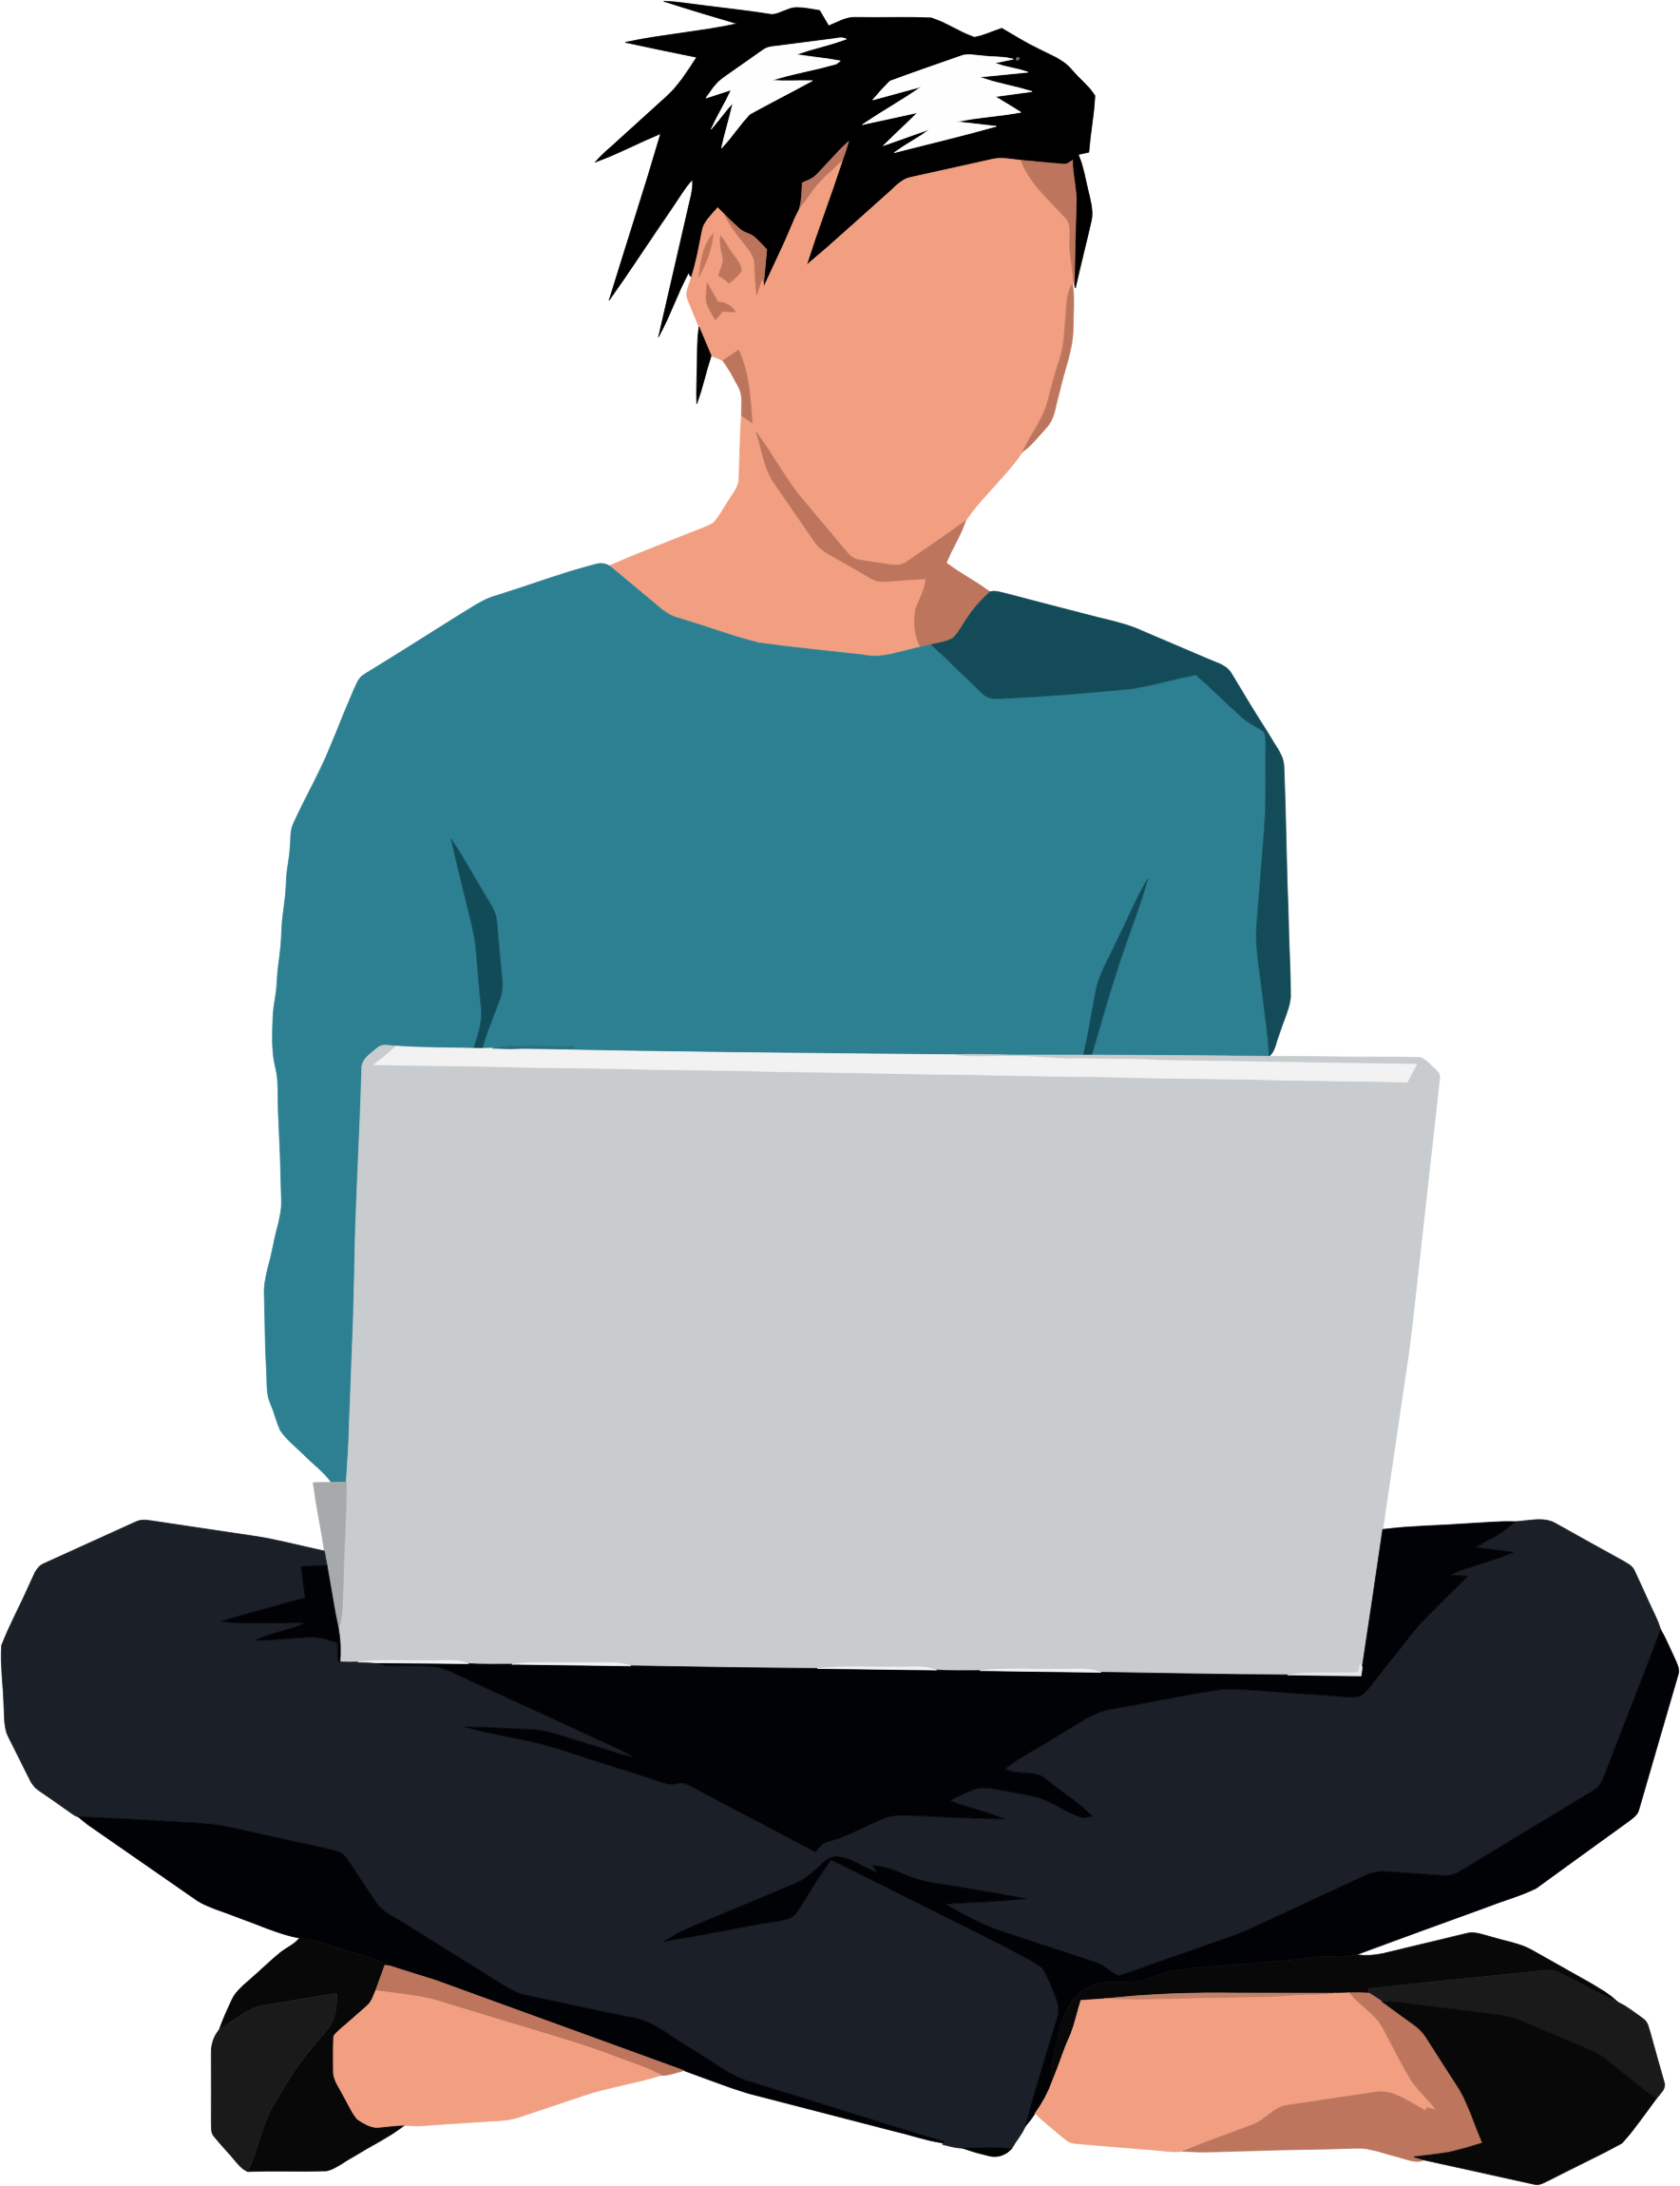 Sitting down with laptop. Clipart reading woman